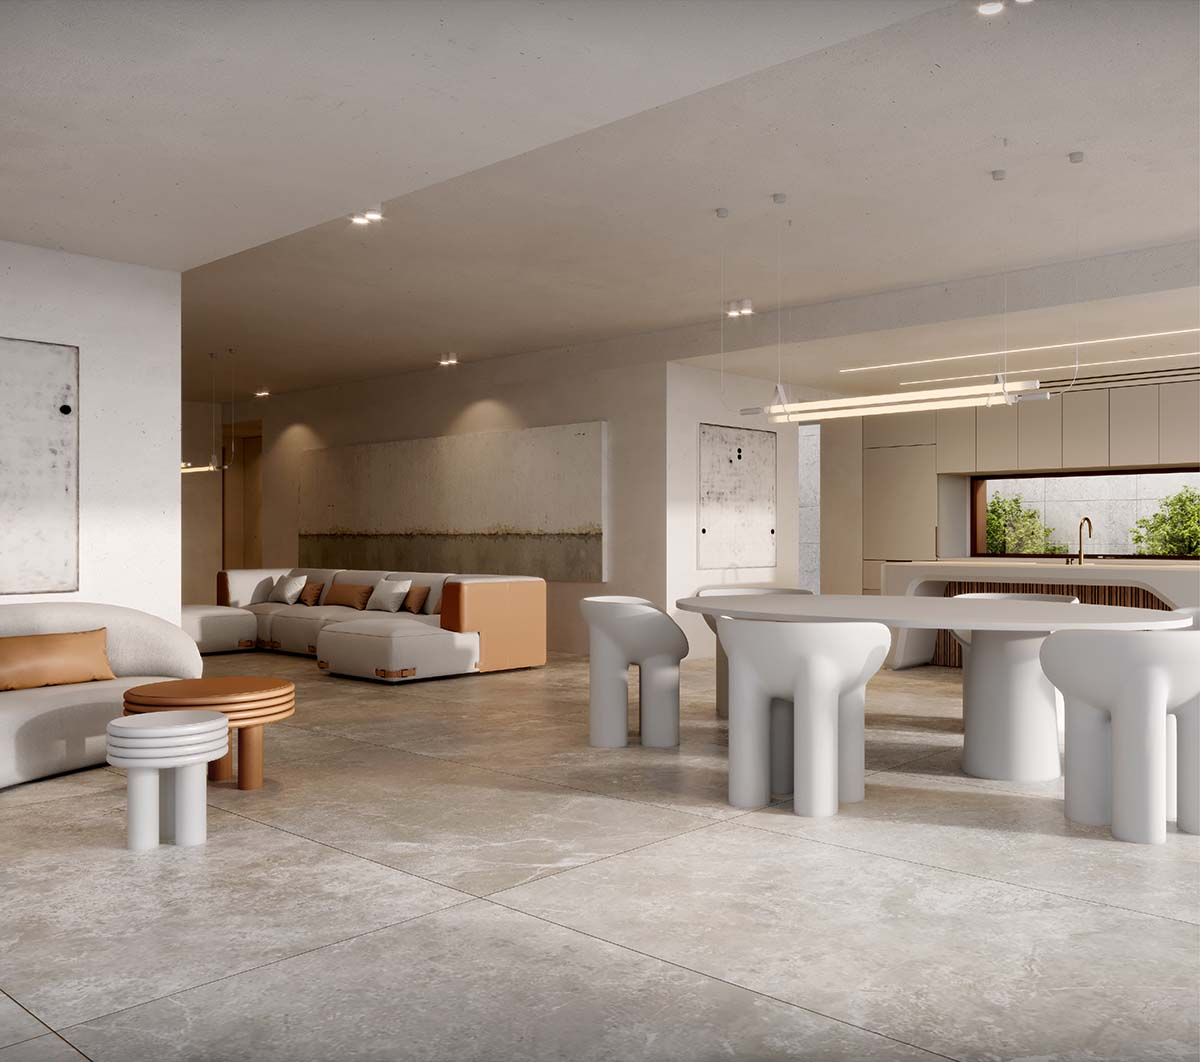 Dining and kitchen area with white table, benchtop and living area